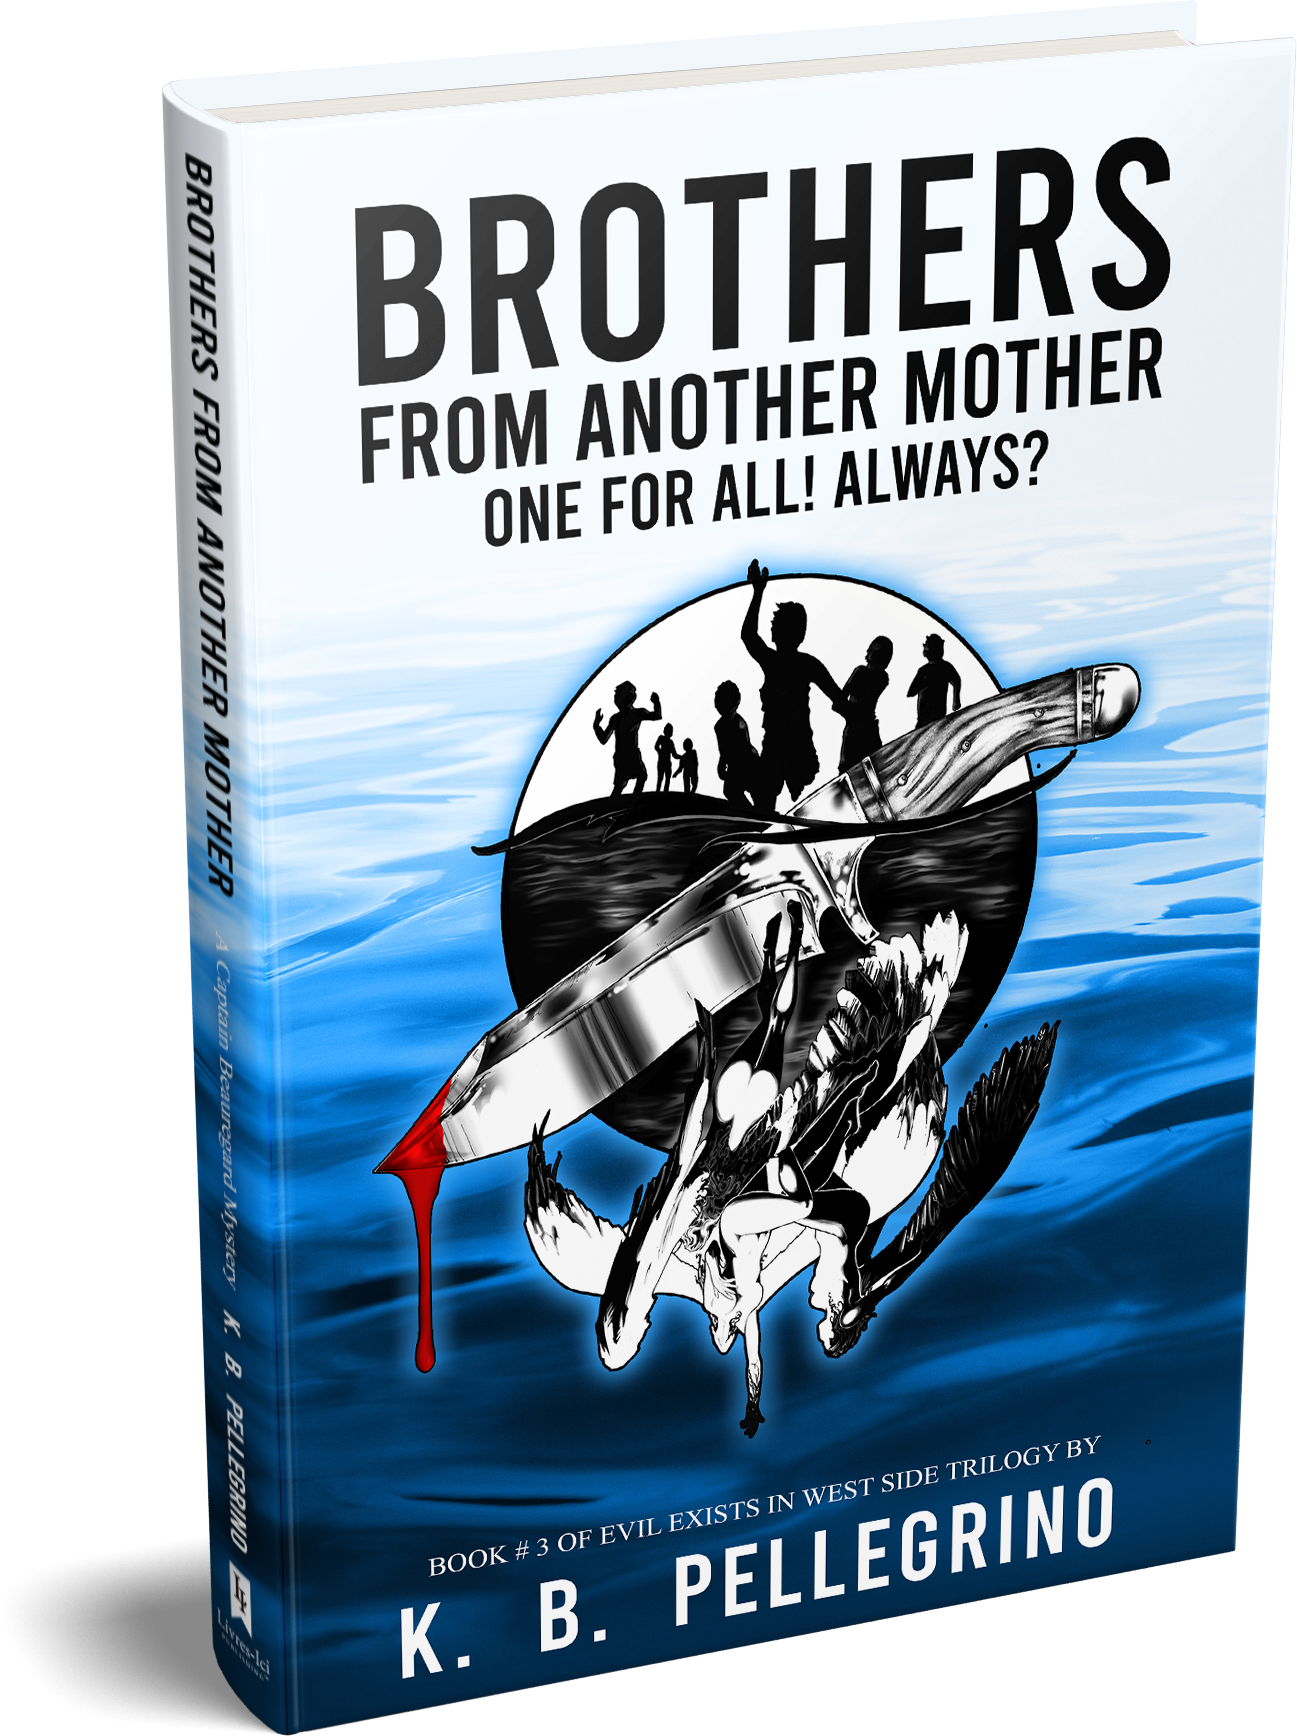 Brothers From Another Mother by K.B. Pellegrino